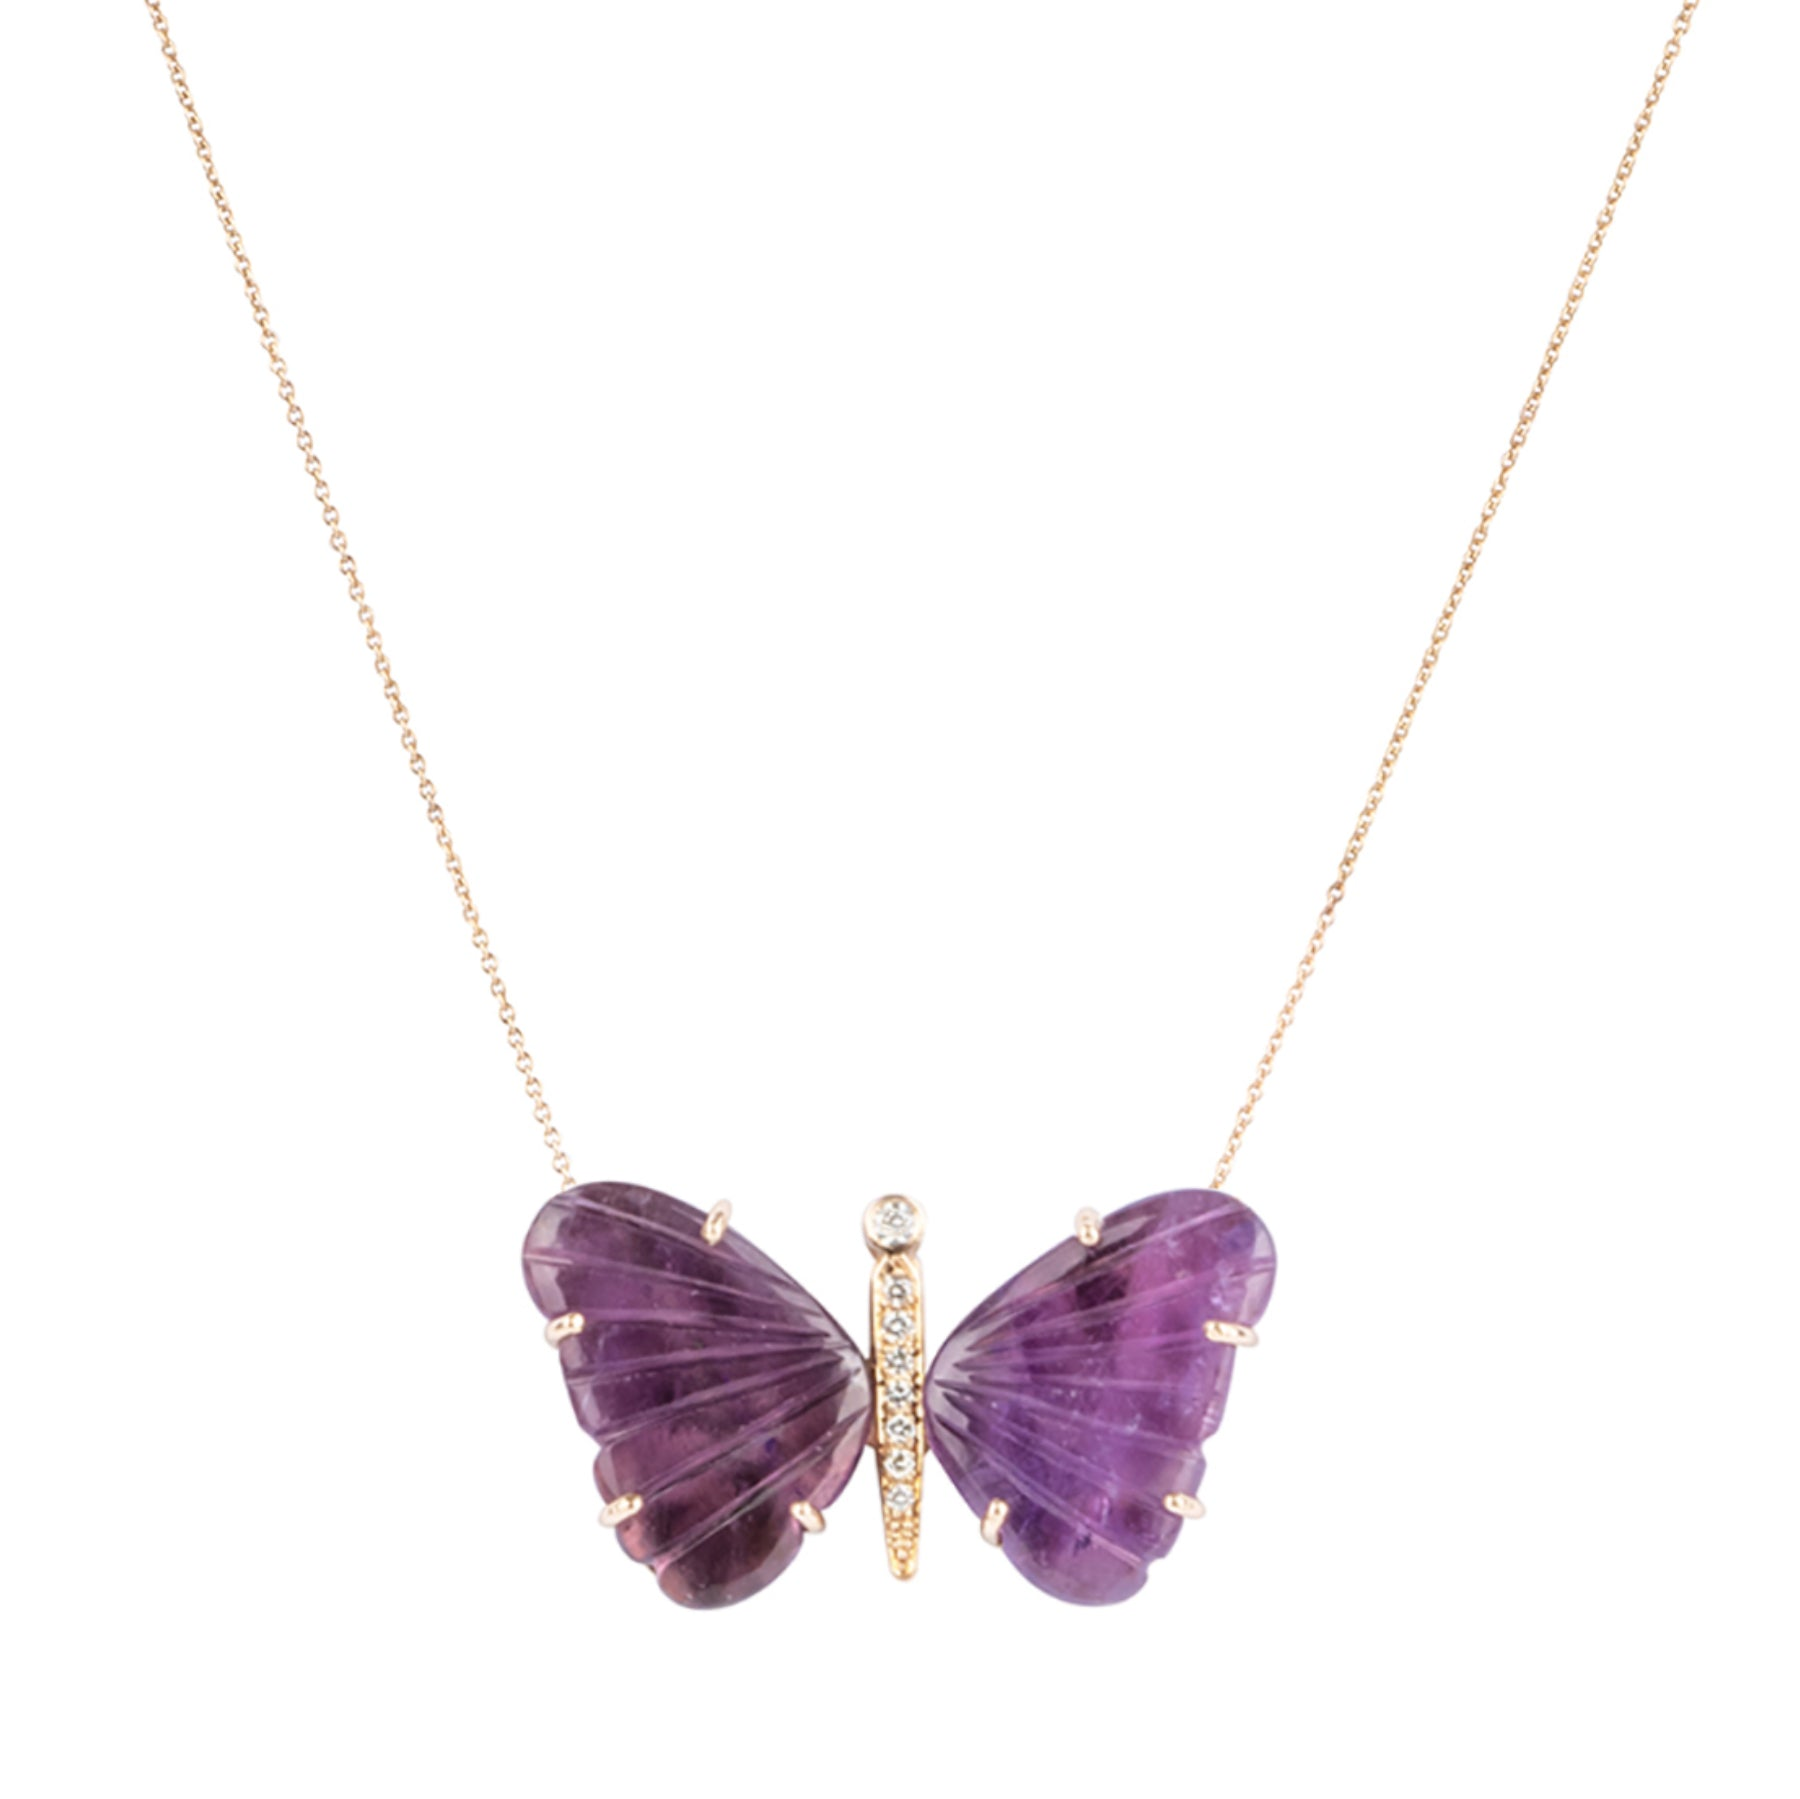 Large Amethyst Butterfly Necklace